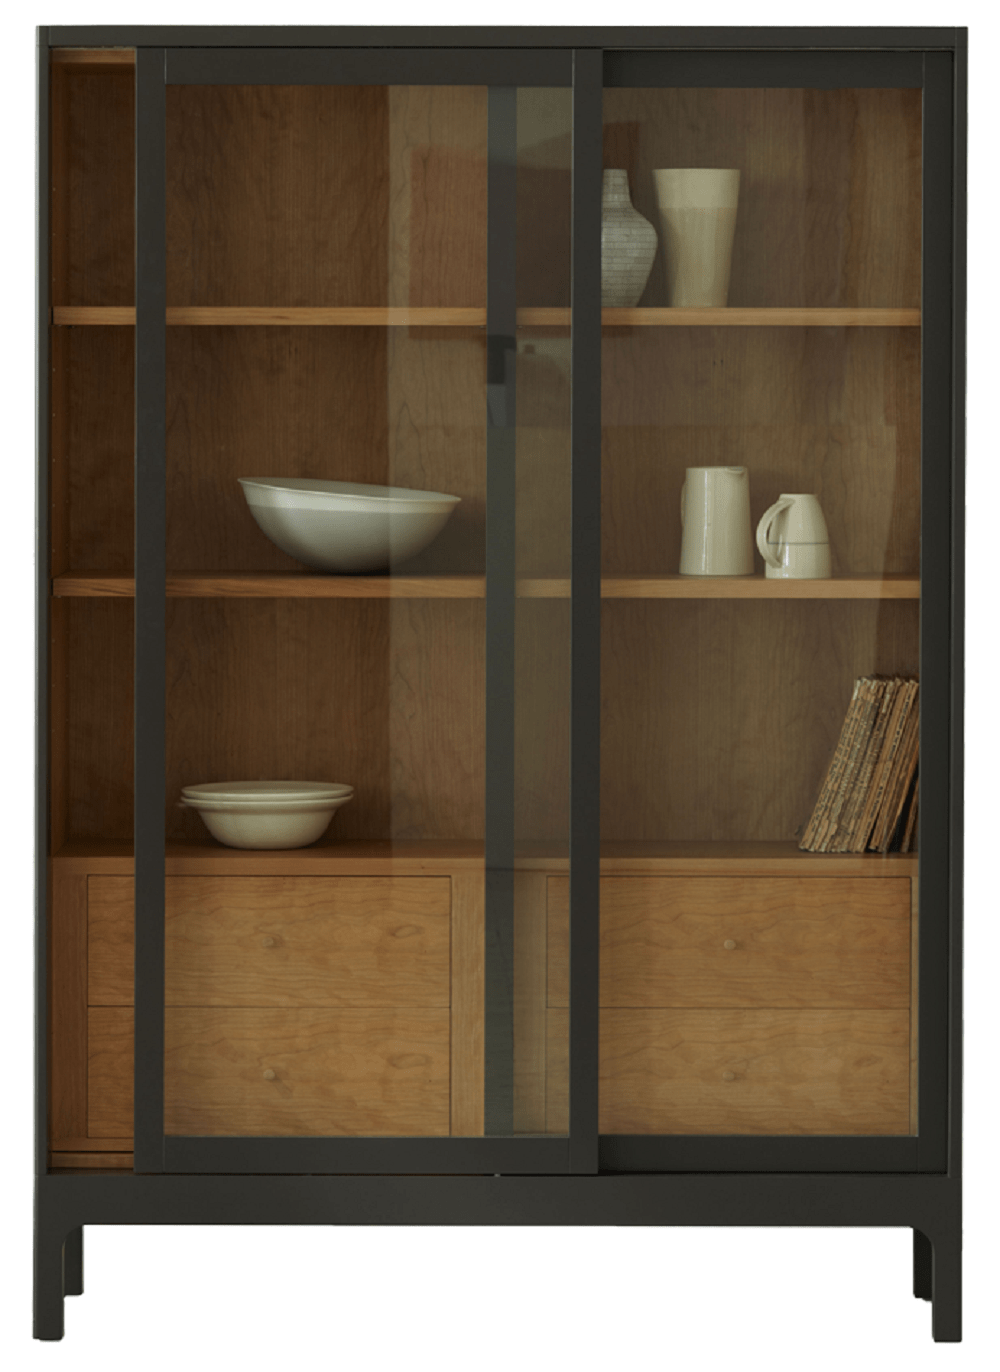 Le Meilleur Joyce Cabinet By Russell Pinch For The Conran Shop Ce Mois Ci